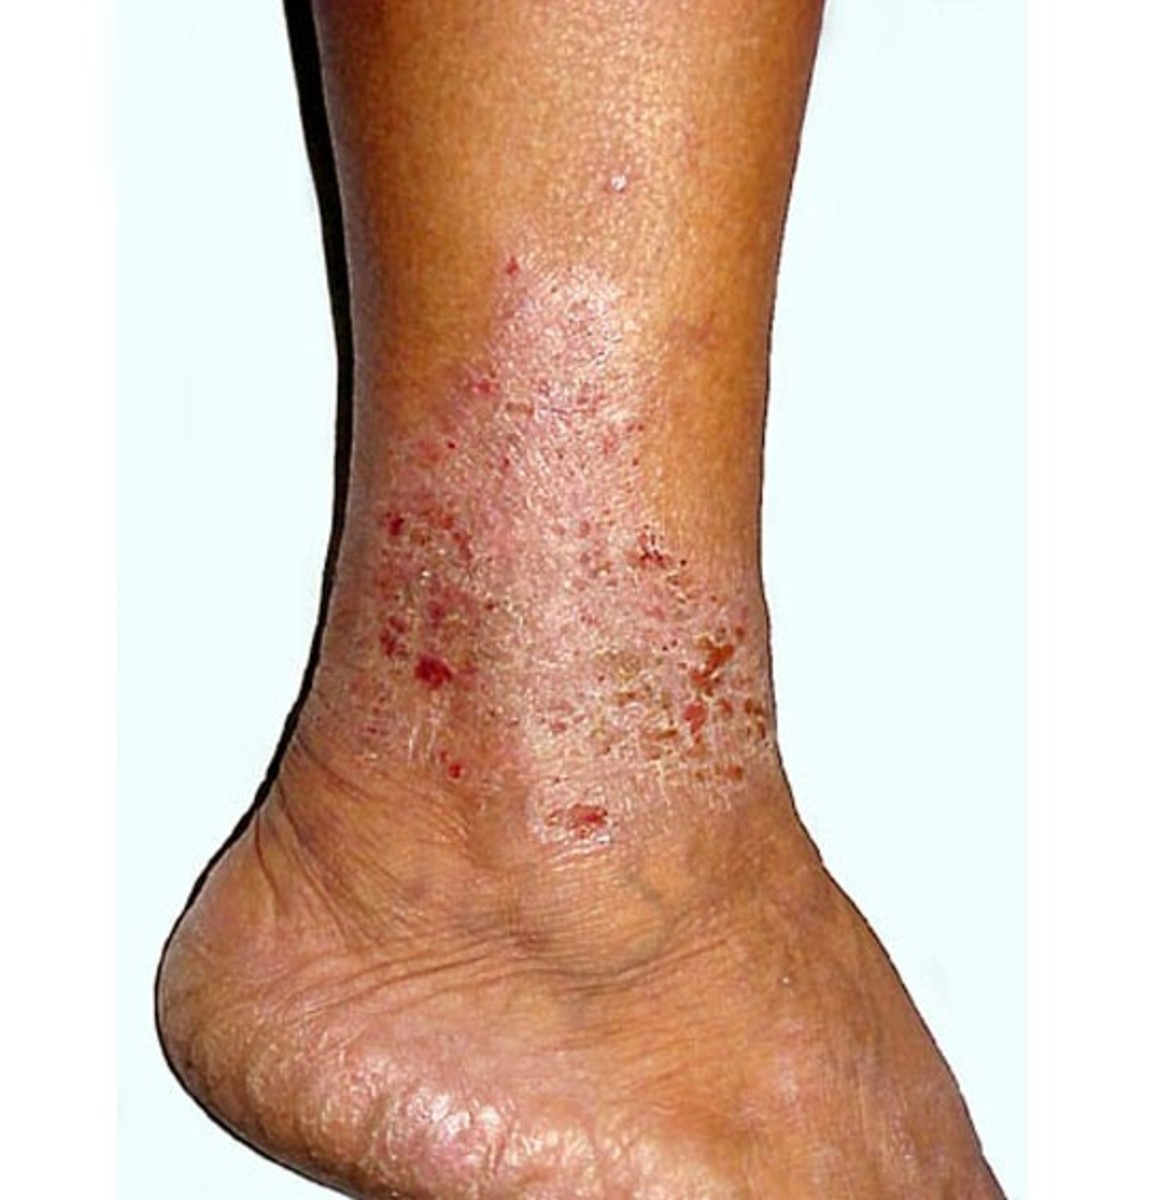 Stasis Dermatitis - Pictures, Symptoms, Causes, Treatment, Diagnosis